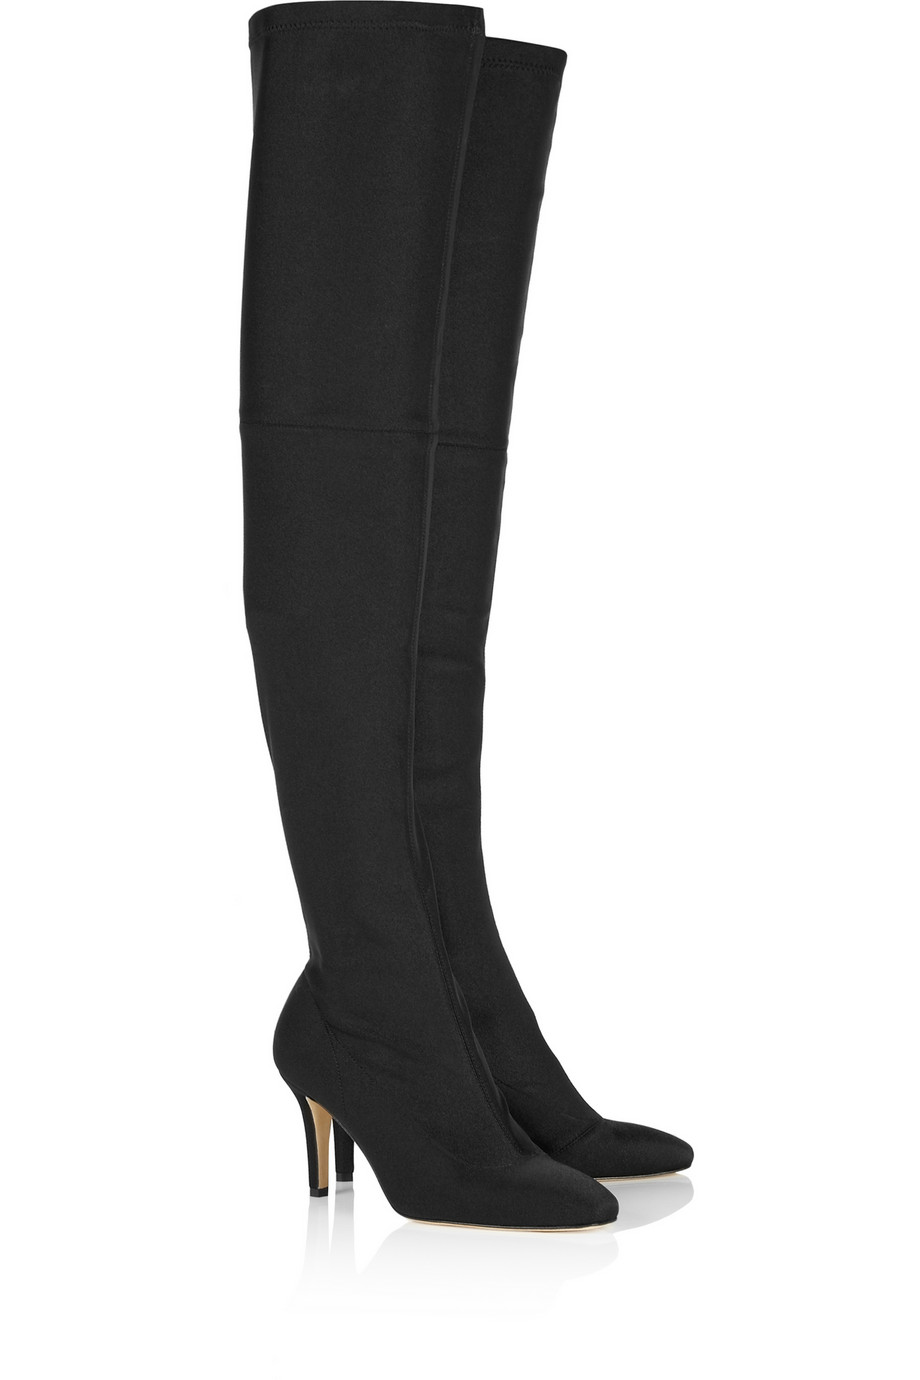 buy cheap online Oscar de la Renta Suede Knee-High Boots outlet countdown package free shipping new 10eaAvI